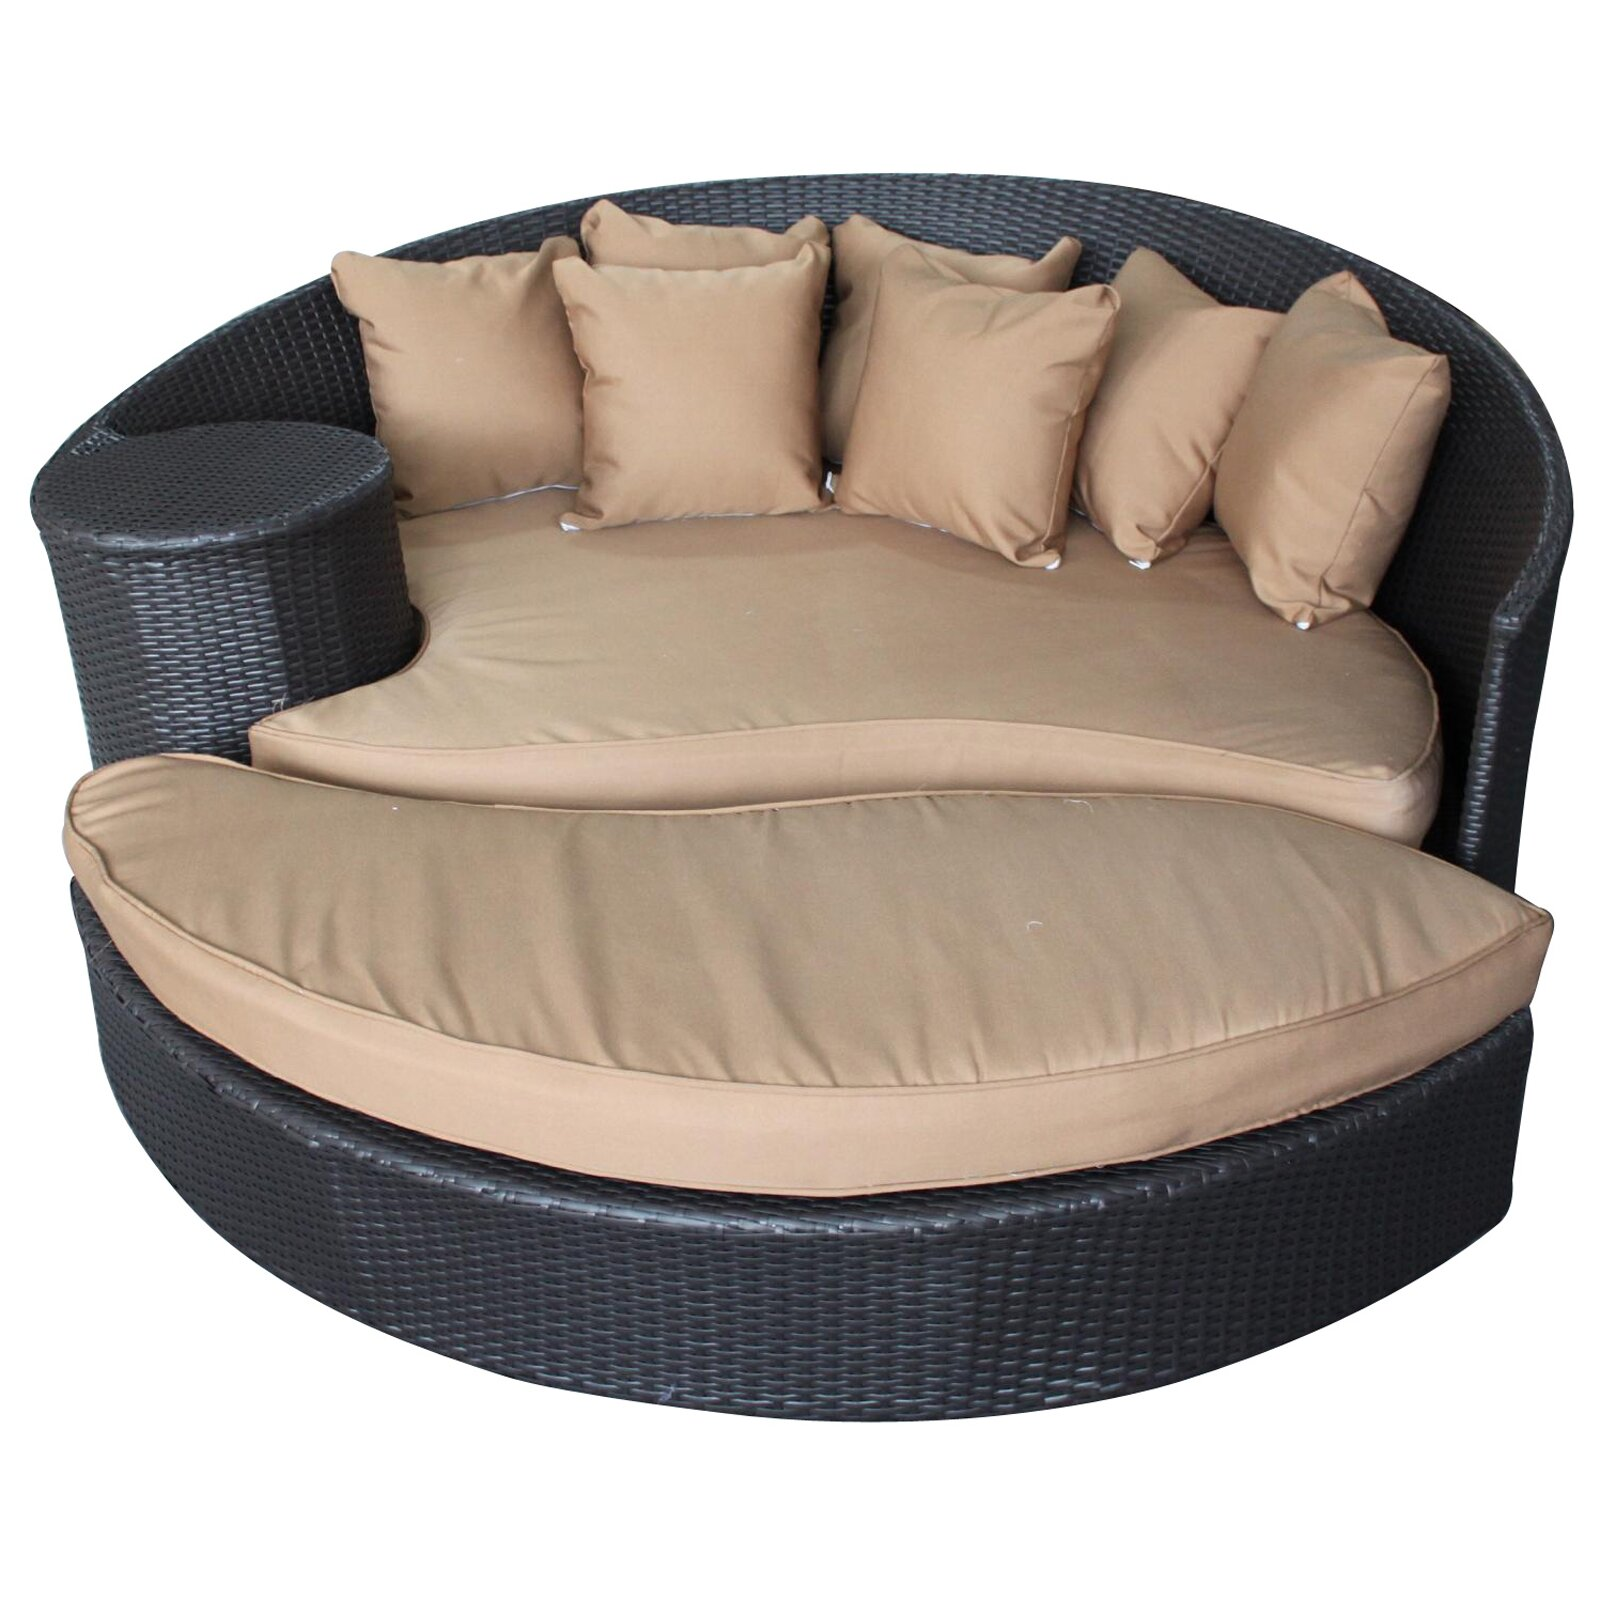 Modway Taiji Outdoor Daybed with Ottoman & Cushion